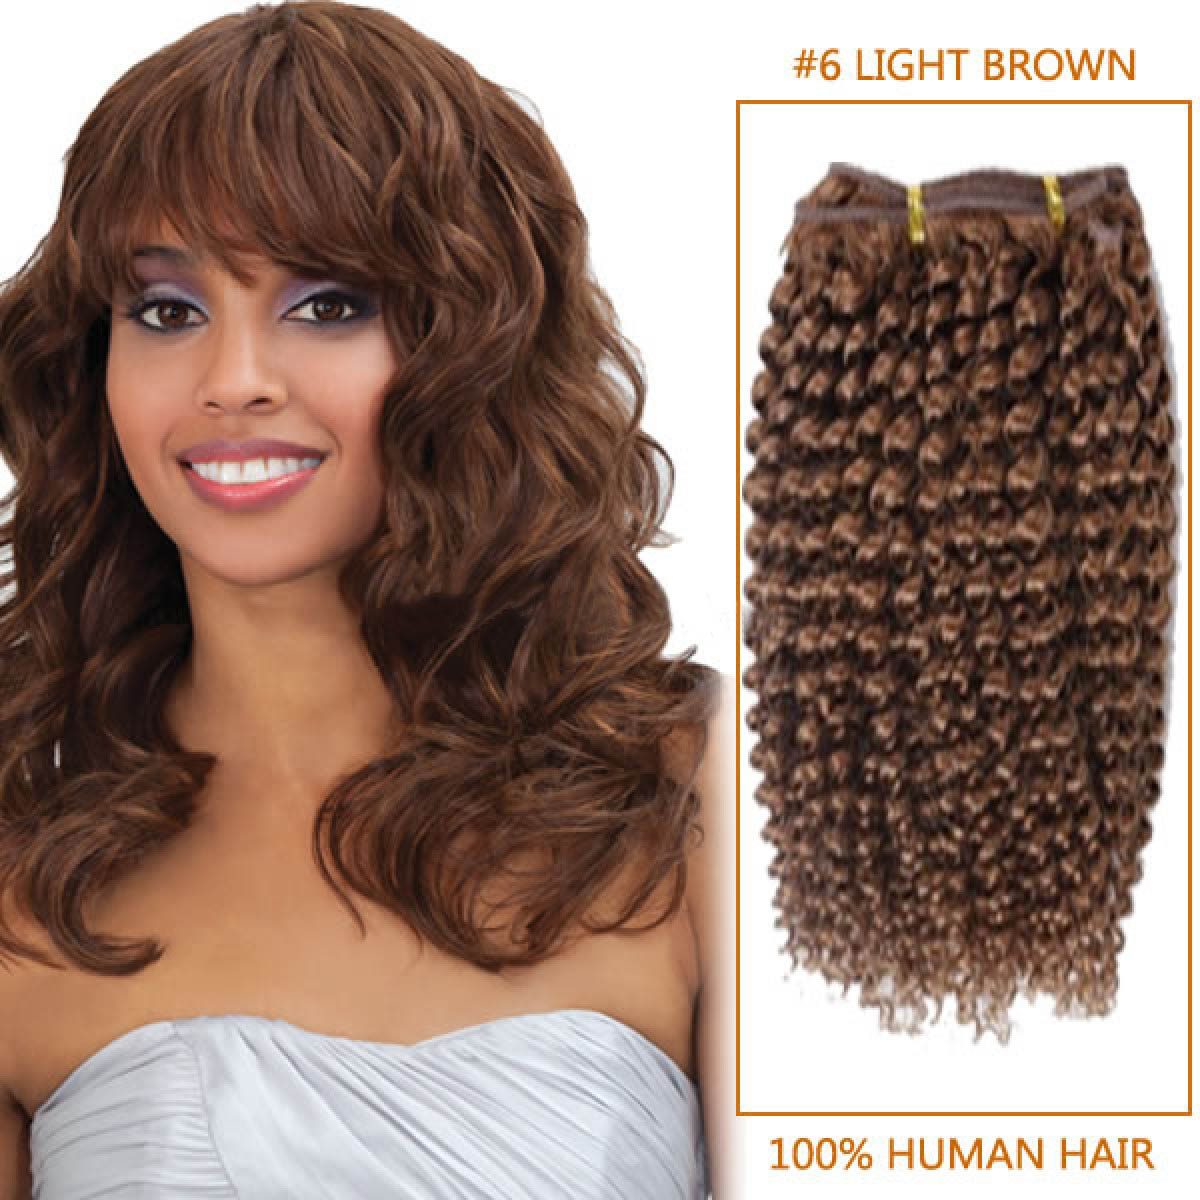 14 Inch 6 Light Brown Afro Curl Indian Remy Hair Wefts